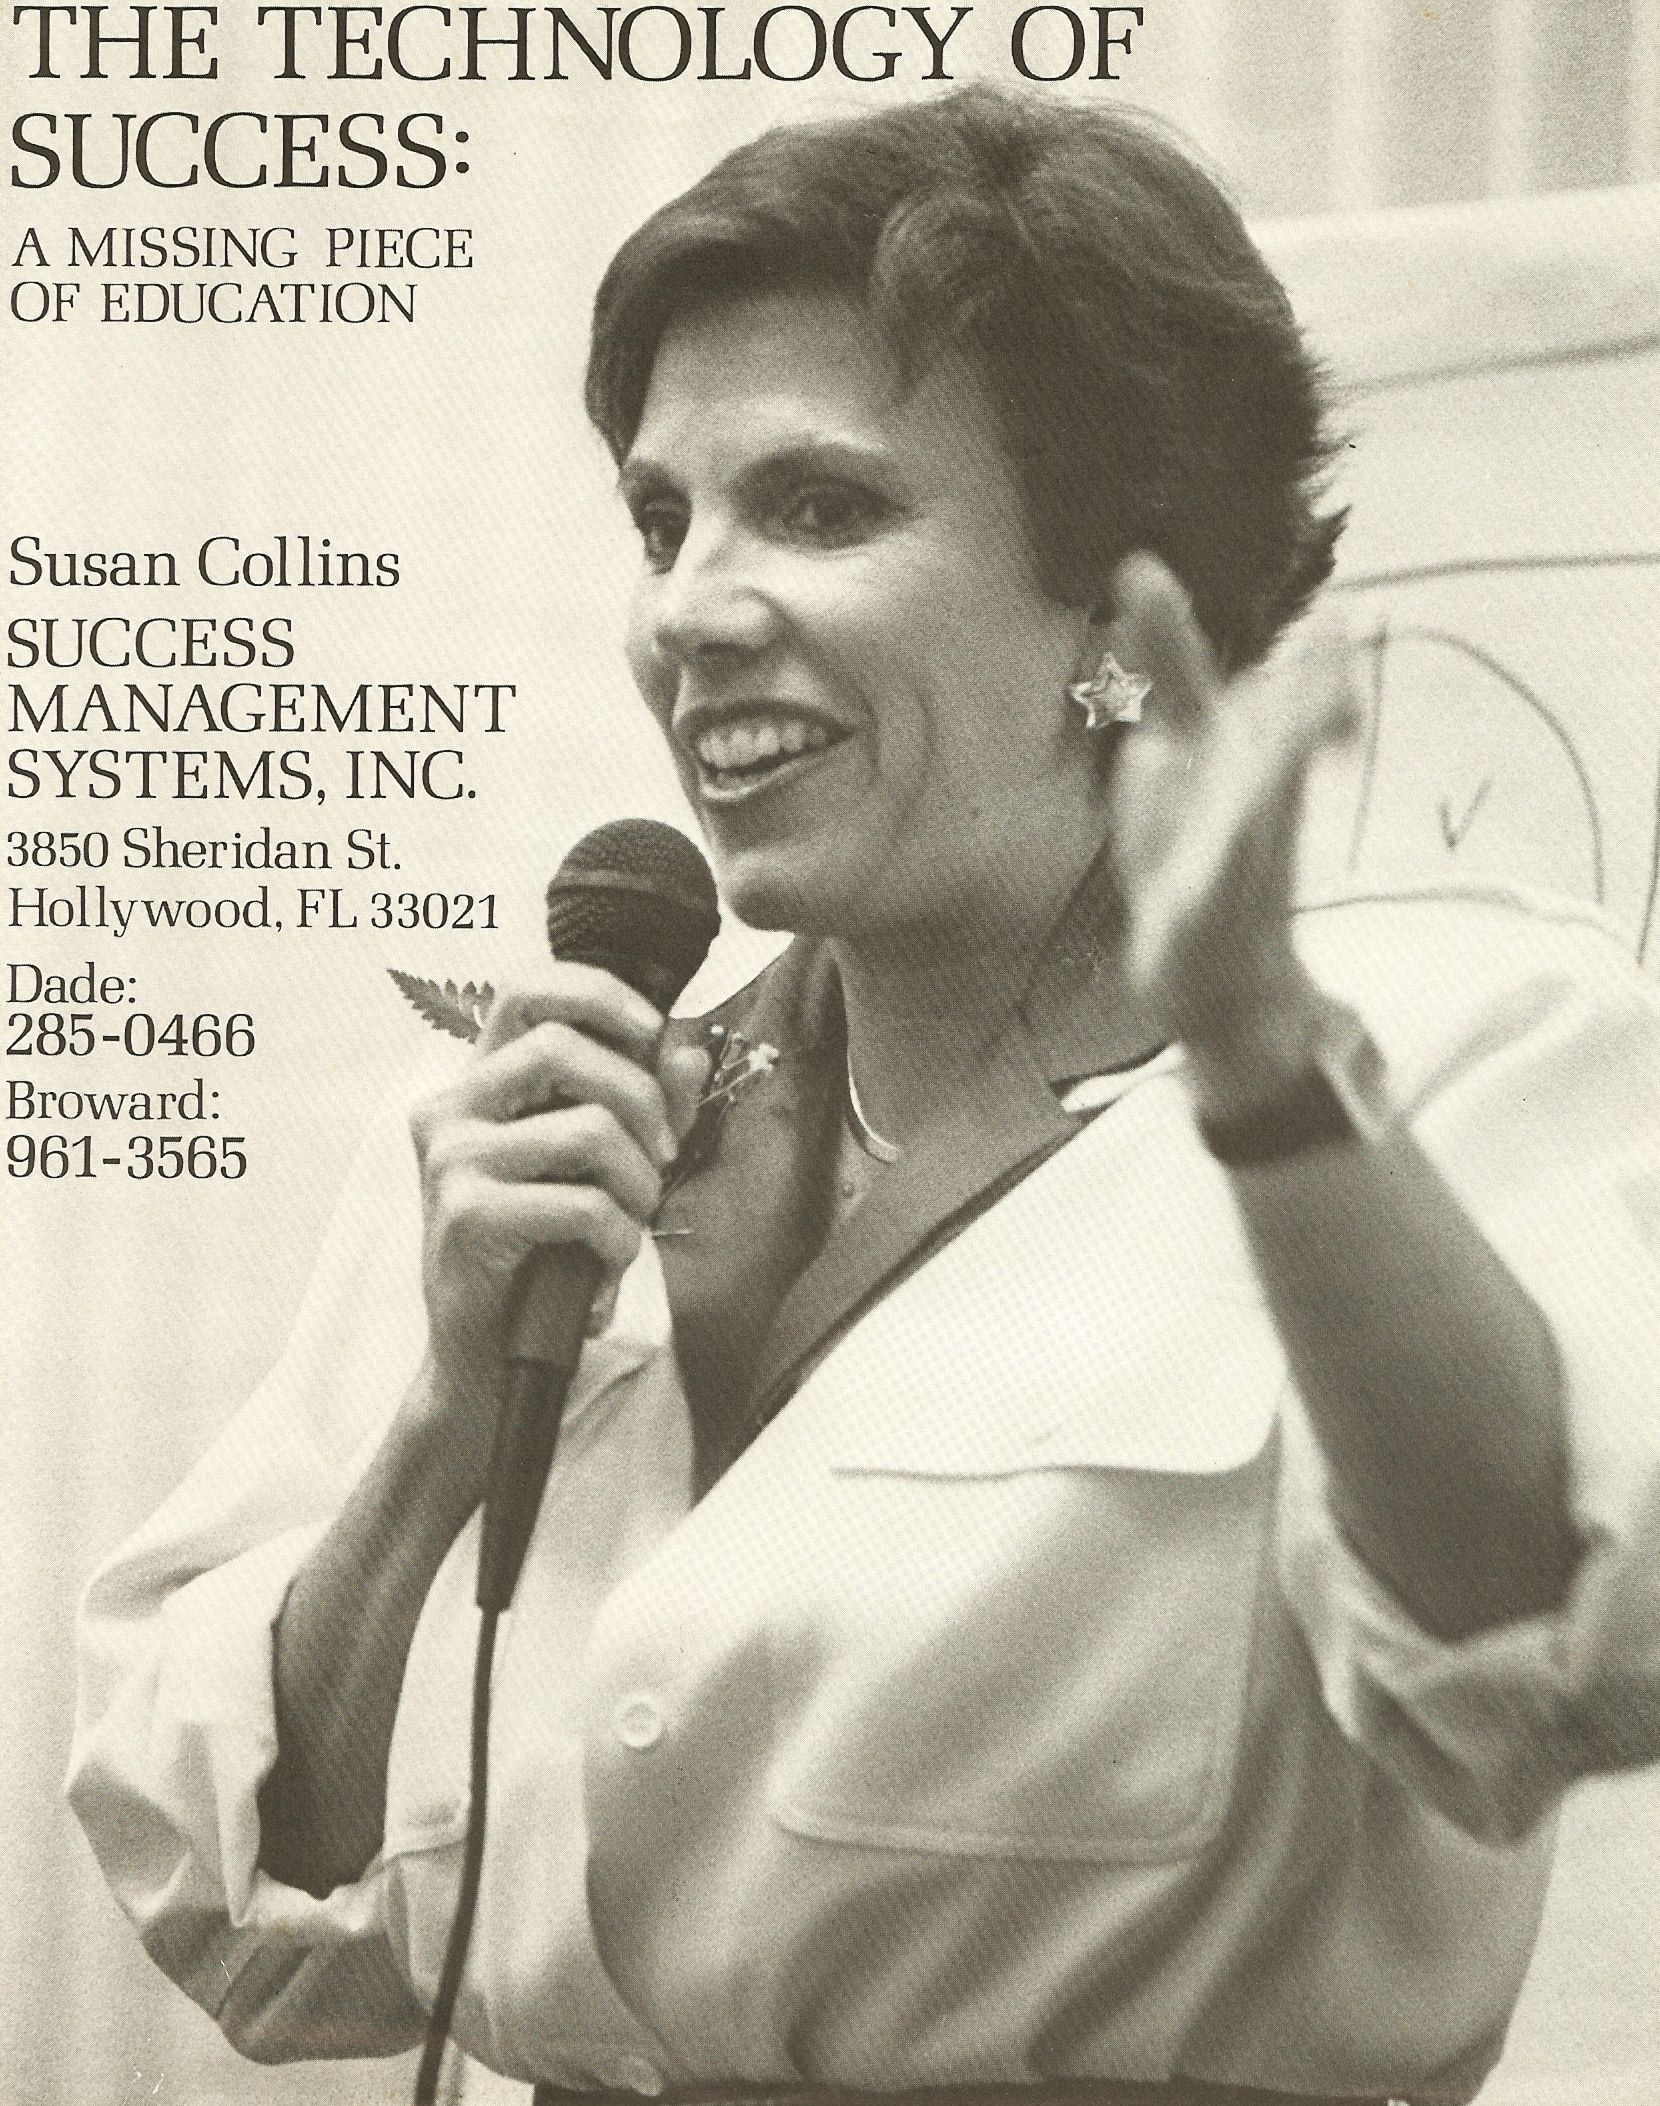 Susan Ford Collins, creator of The Technology of Success